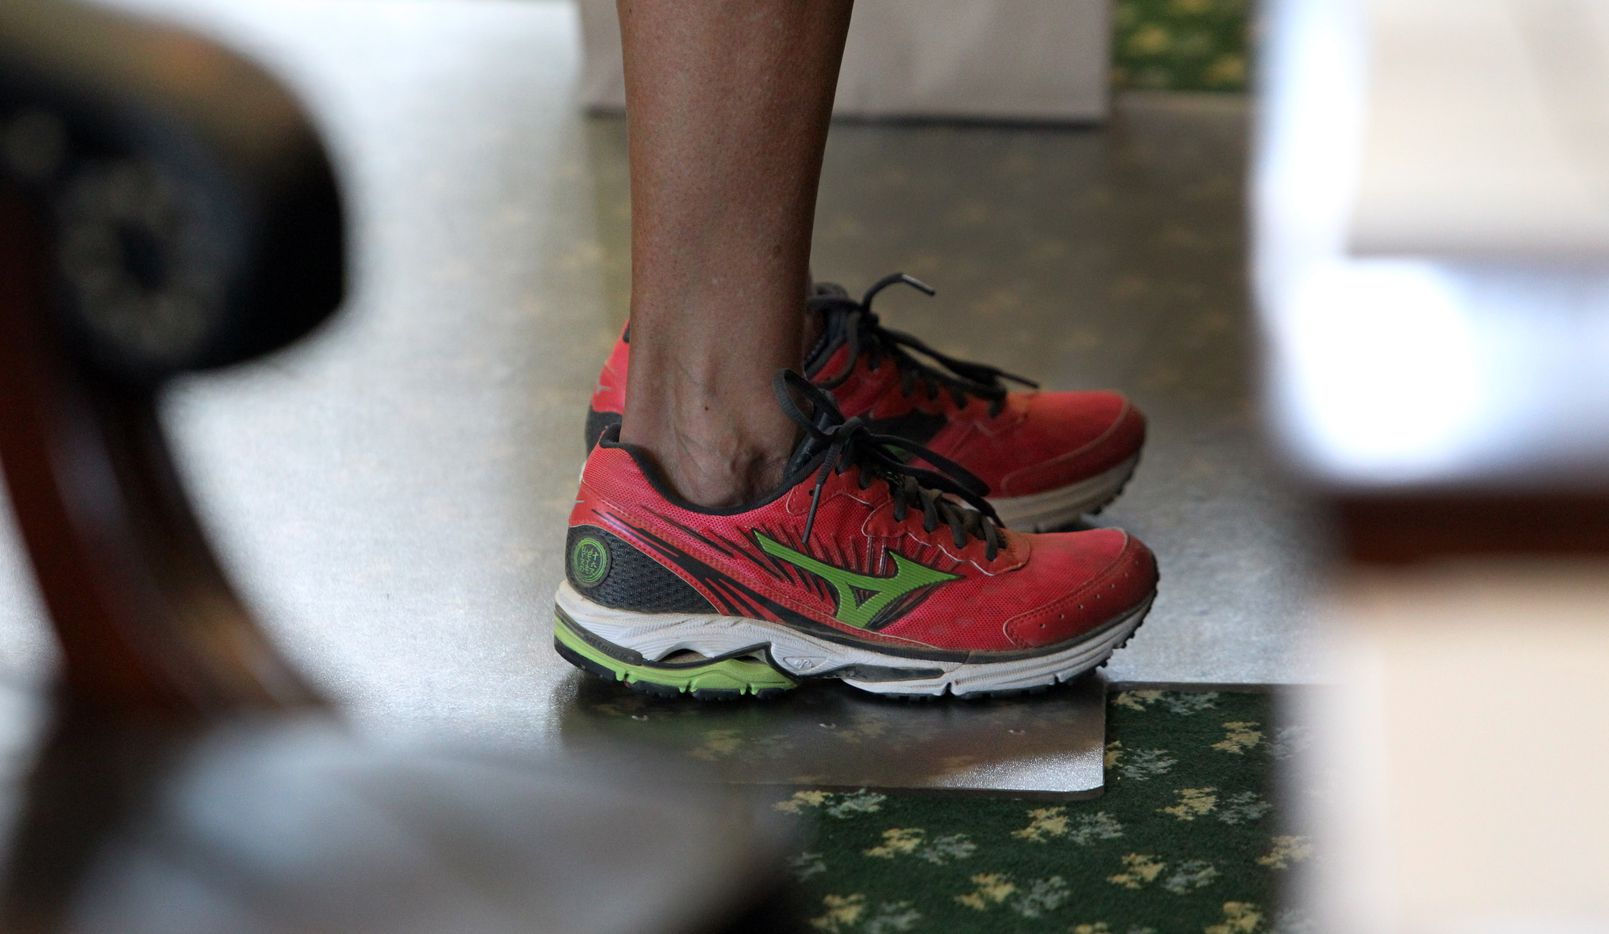 State Senator Wendy Davis wears comfortable shoes as she filibusters during the final day of the legislative special session, as the Senate considers an abortion bills on Tuesday, June 25, 2013.  (Louis DeLuca/Dallas Morning News) 06262013xBRIEFING 06272013xNEWS 06292013xNEWS 12292013xNEWS 08312014xNEWS